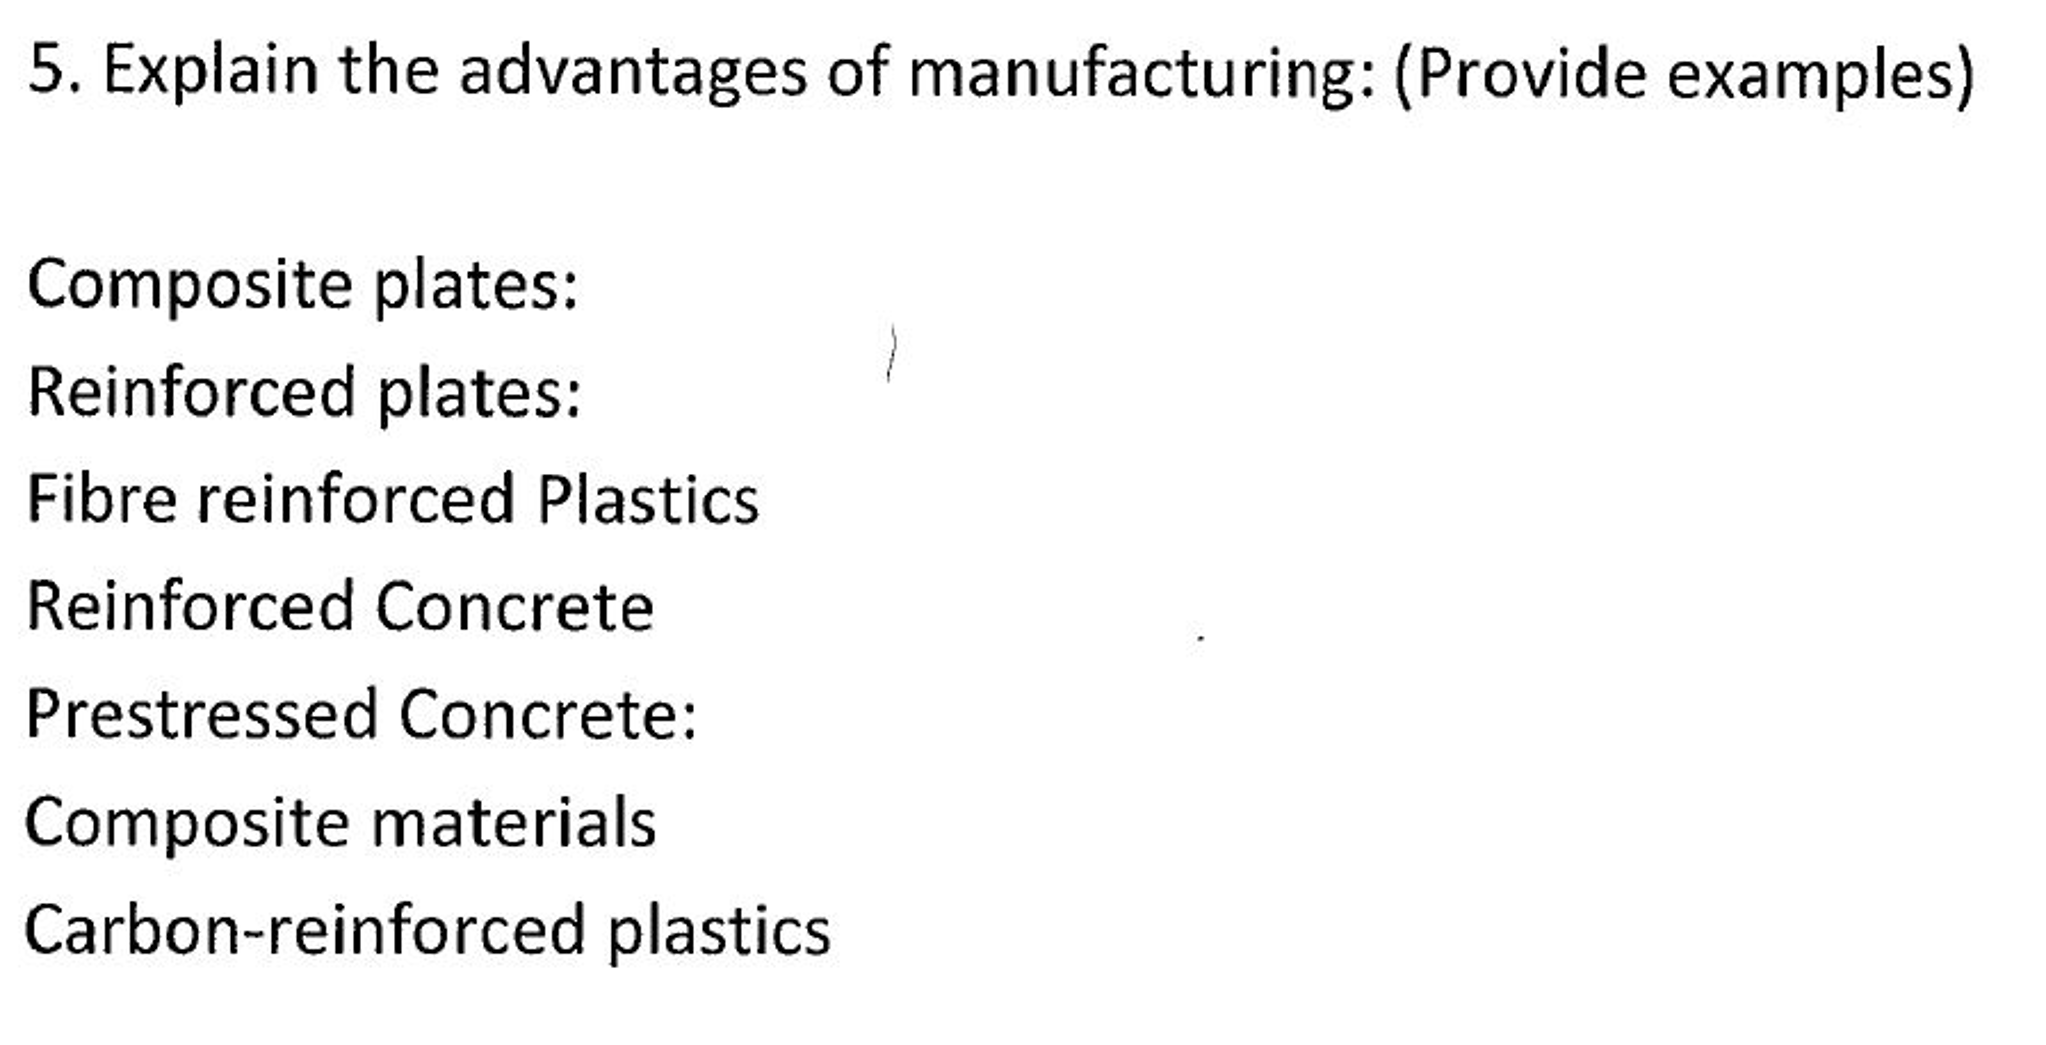 Solved: Explain The Advantages Of Manufacturing: (Provide